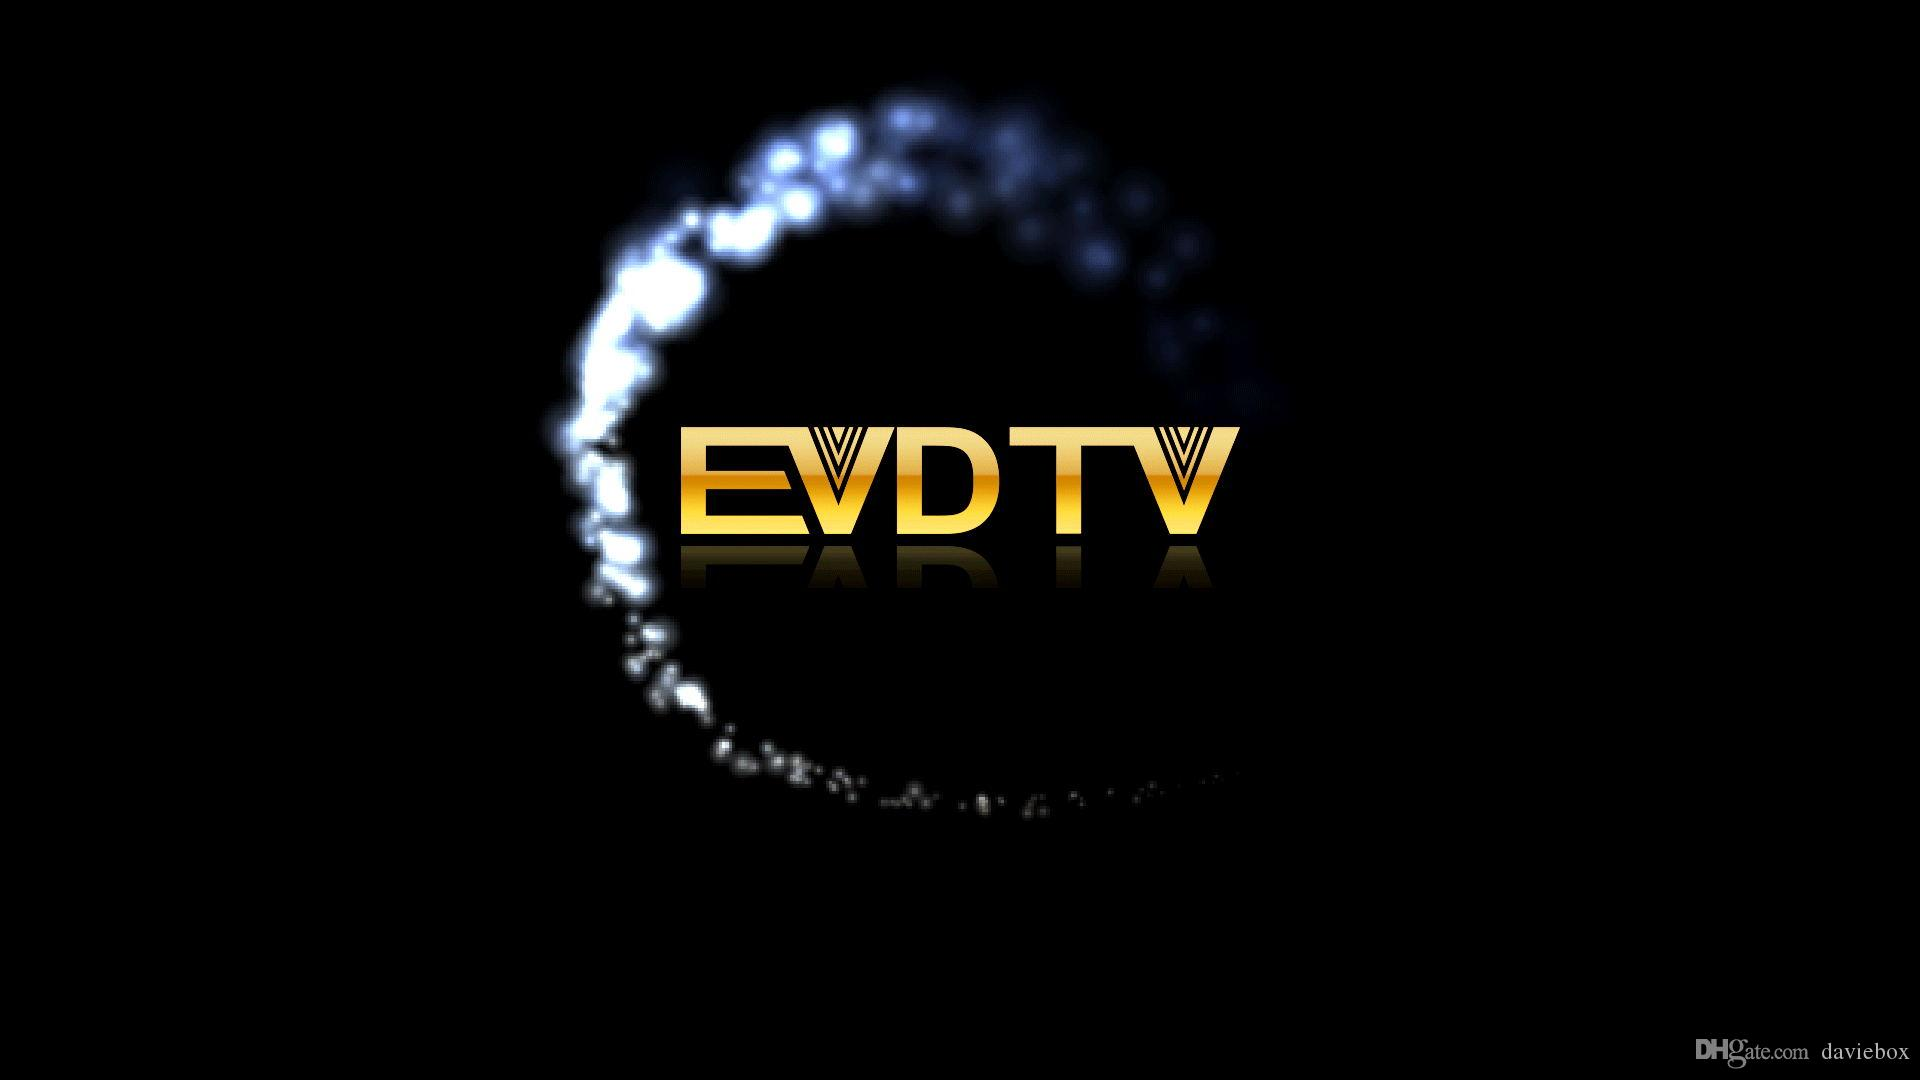 EVDTV IPTV Android 7 1 Apk Europe IPTV Arabic Iptv QHDTV Sky IT TR UK DE  1300+ Channels Working On Android Enigma2 Mag 250 254channels Electronic